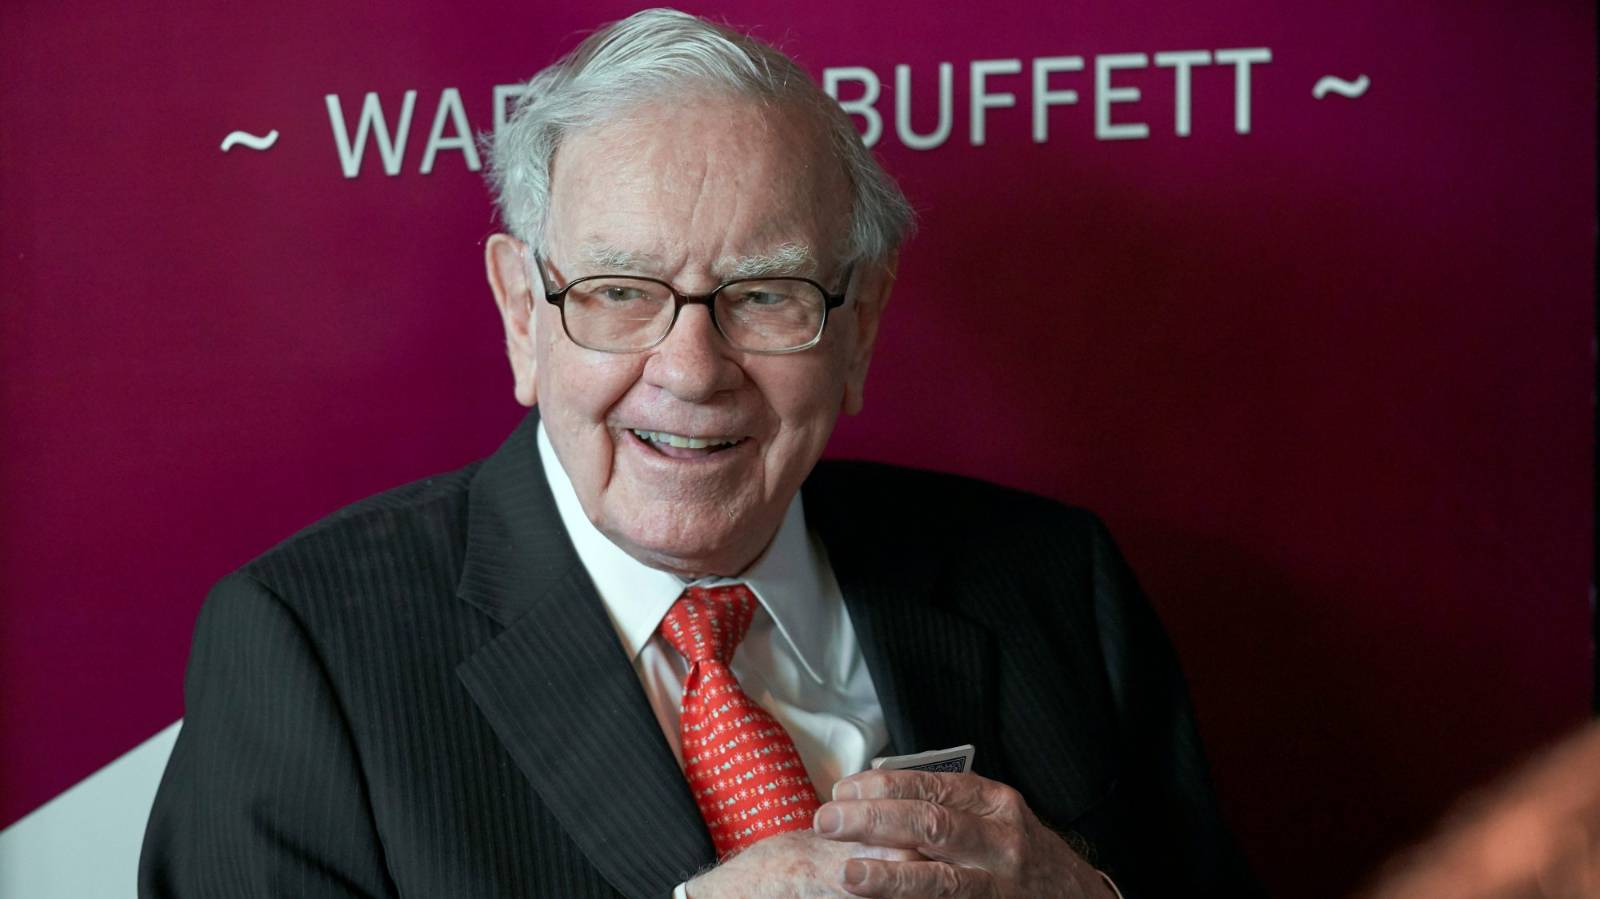 Warren Buffett used to move markets - now he barely causes a ripple